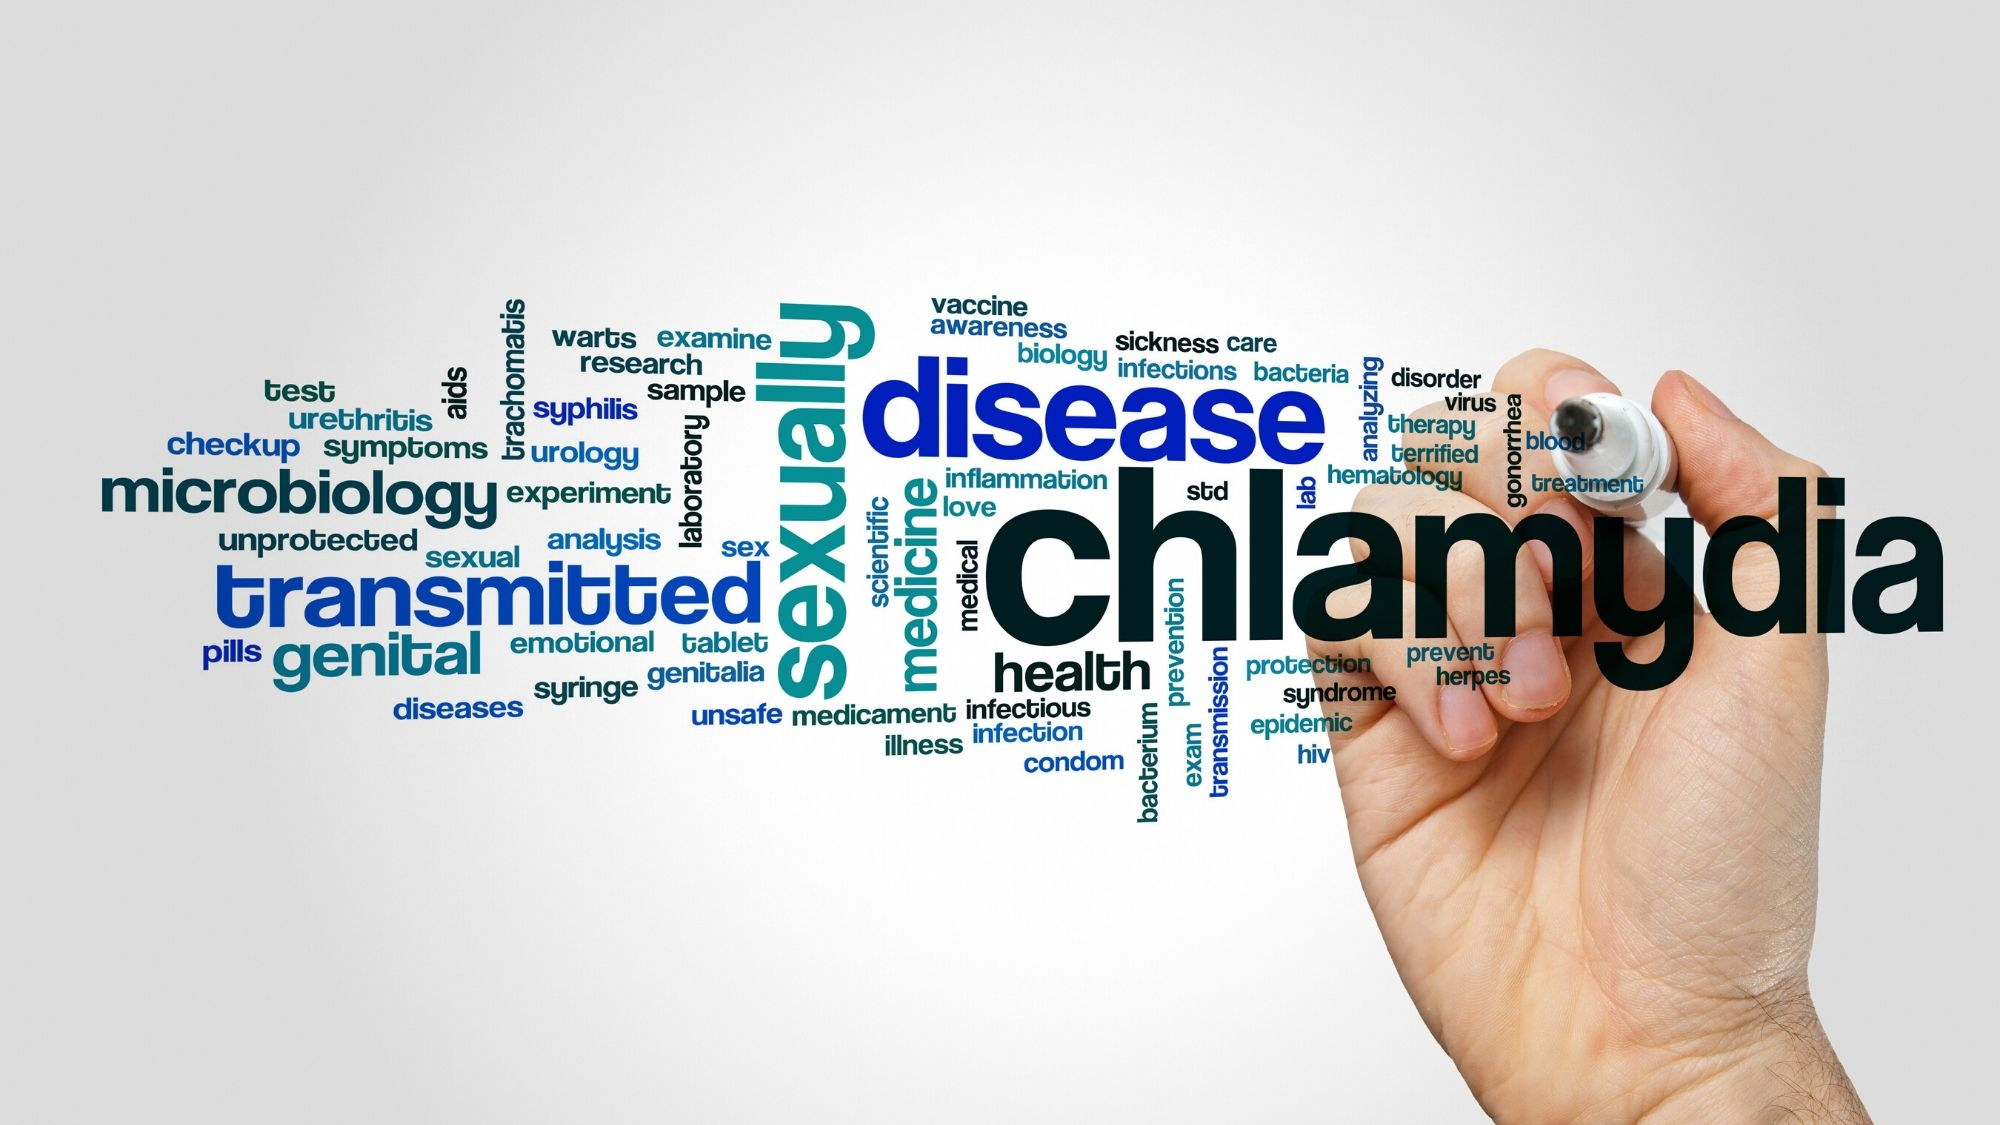 How Chlamydia Infection can Become Serious if Left Untreated